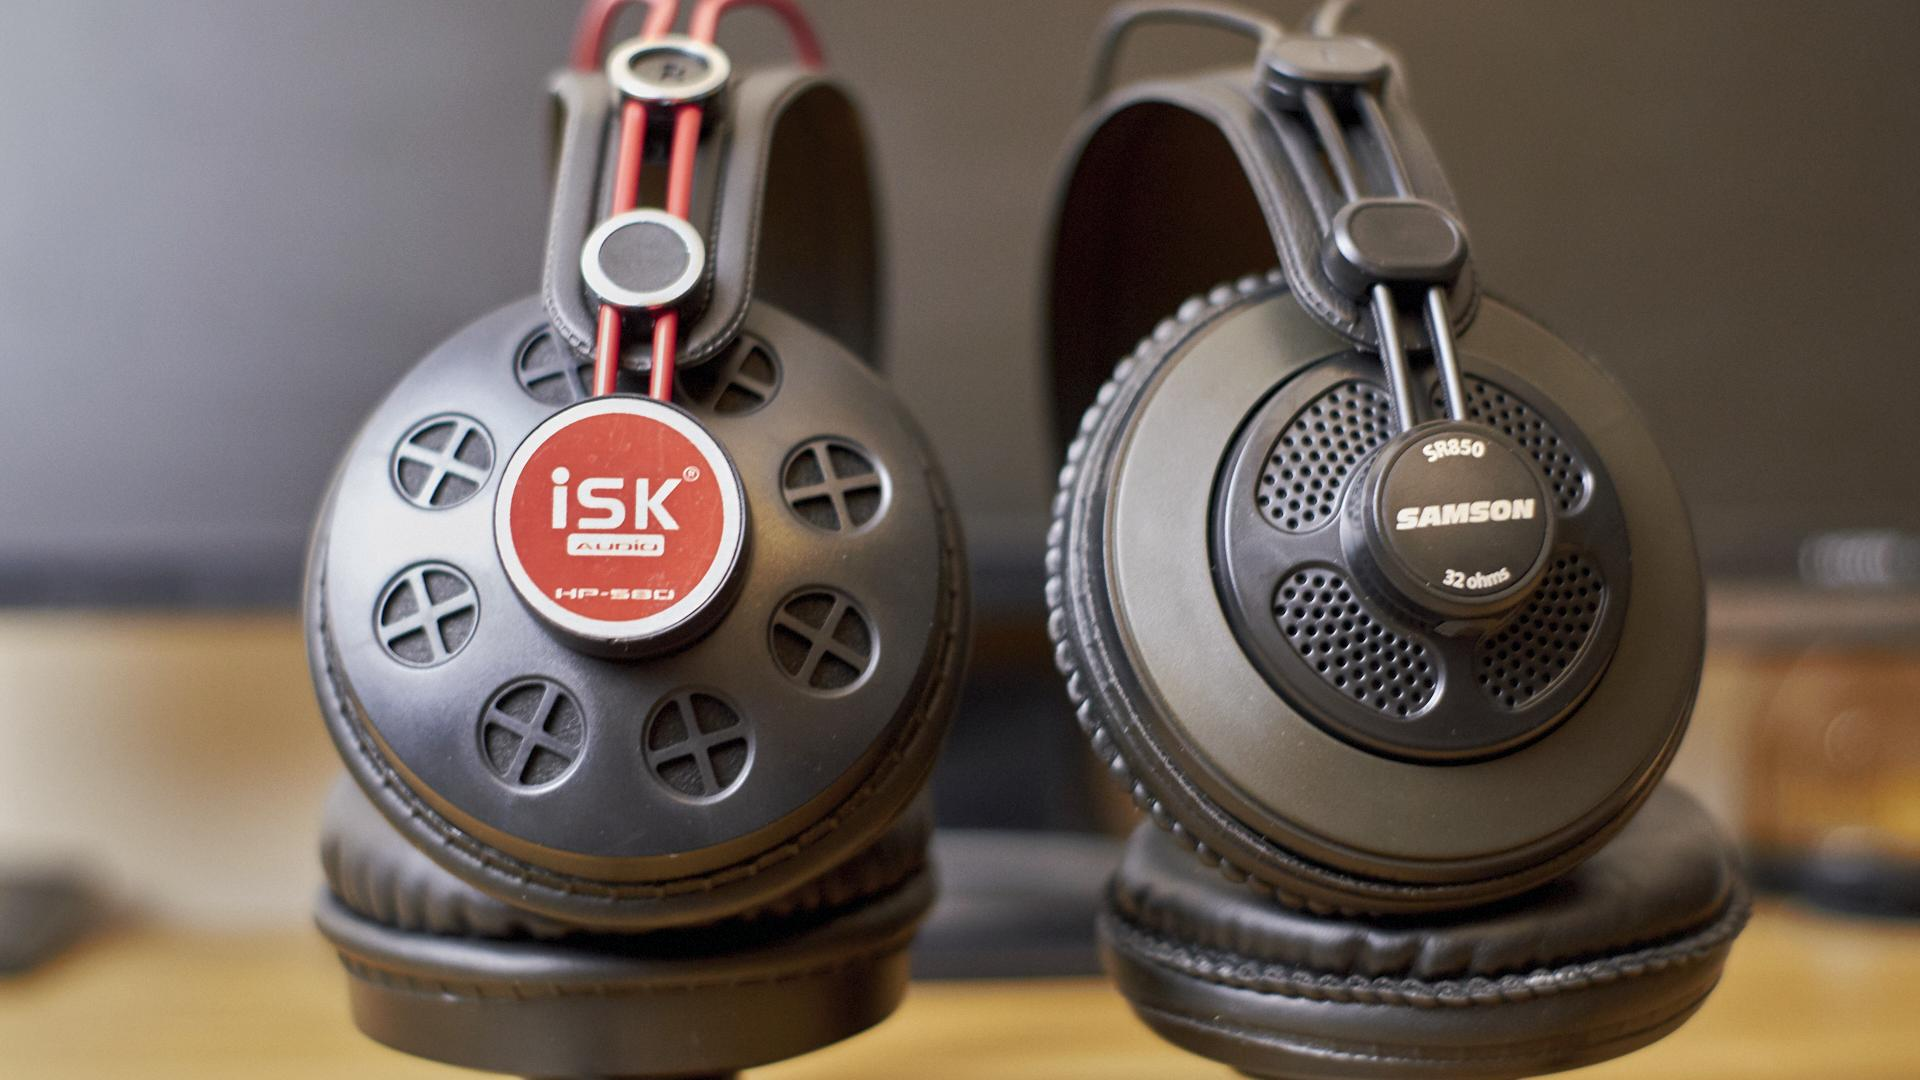 Samson SR850 vs ISK HP580 – two pairs of headphones on a tight budget